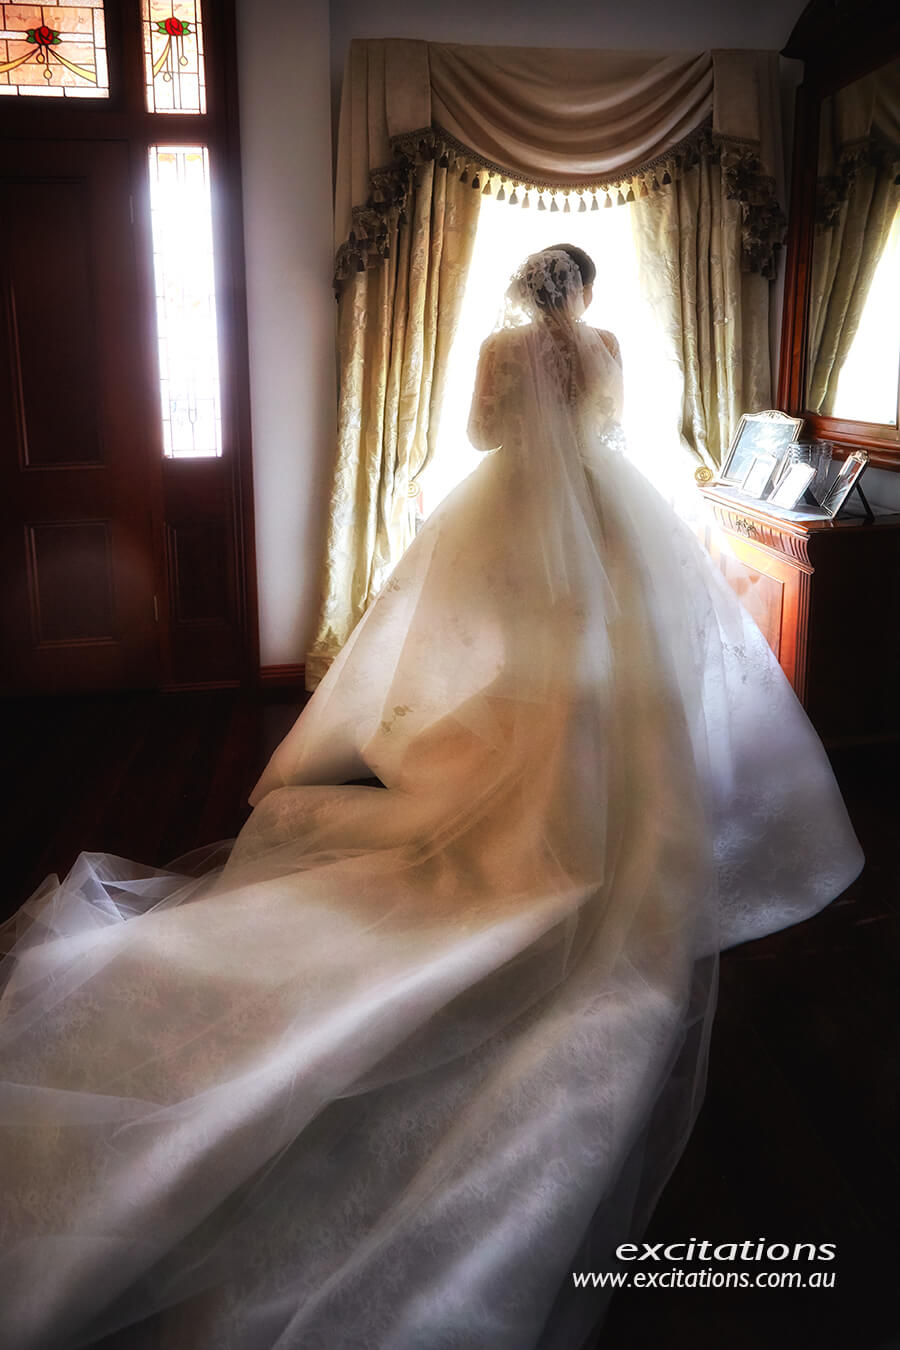 Warm romantic full length photograph of bride from behind. Featuring beautiful natural light, a stunning wedding dress. Sunraysia wedding photography by Excitations.